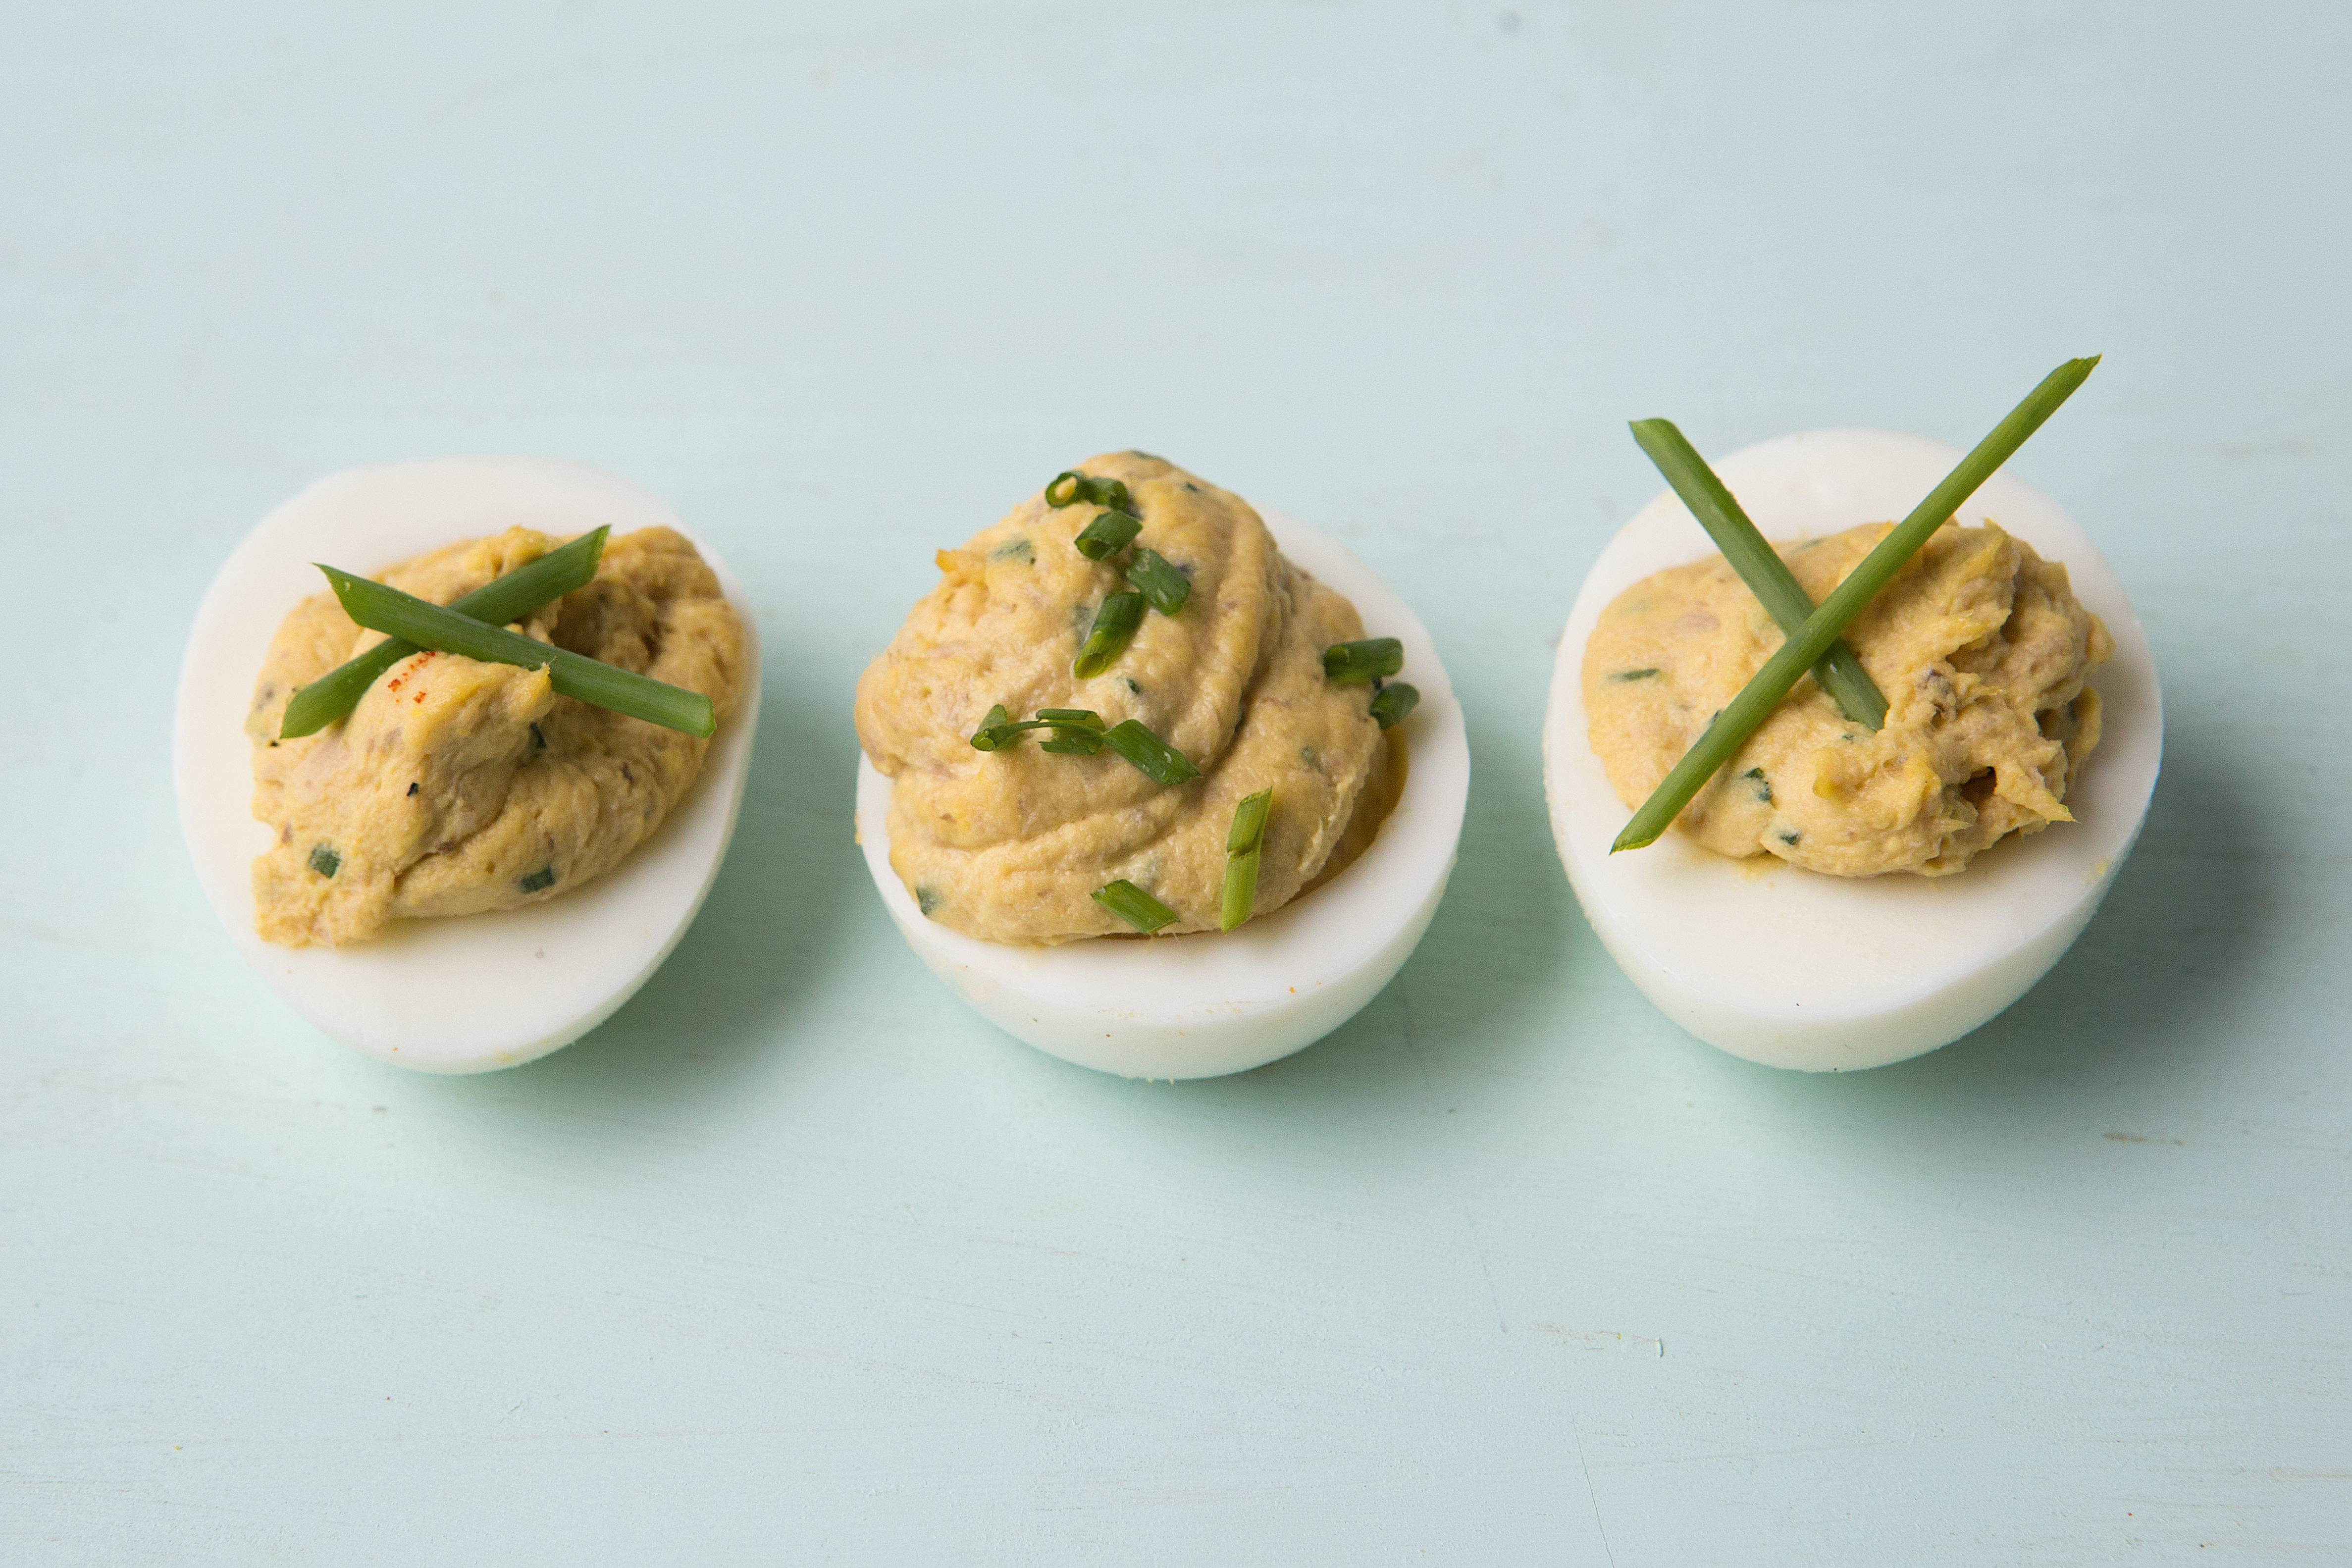 Lourdes's Deviled Eggs With Foie Gras and Tuna. They are named for an aunt of New York chef Alex Raij, who owns Txikito, La Vara and El Quinto Pino restaurants in New York.